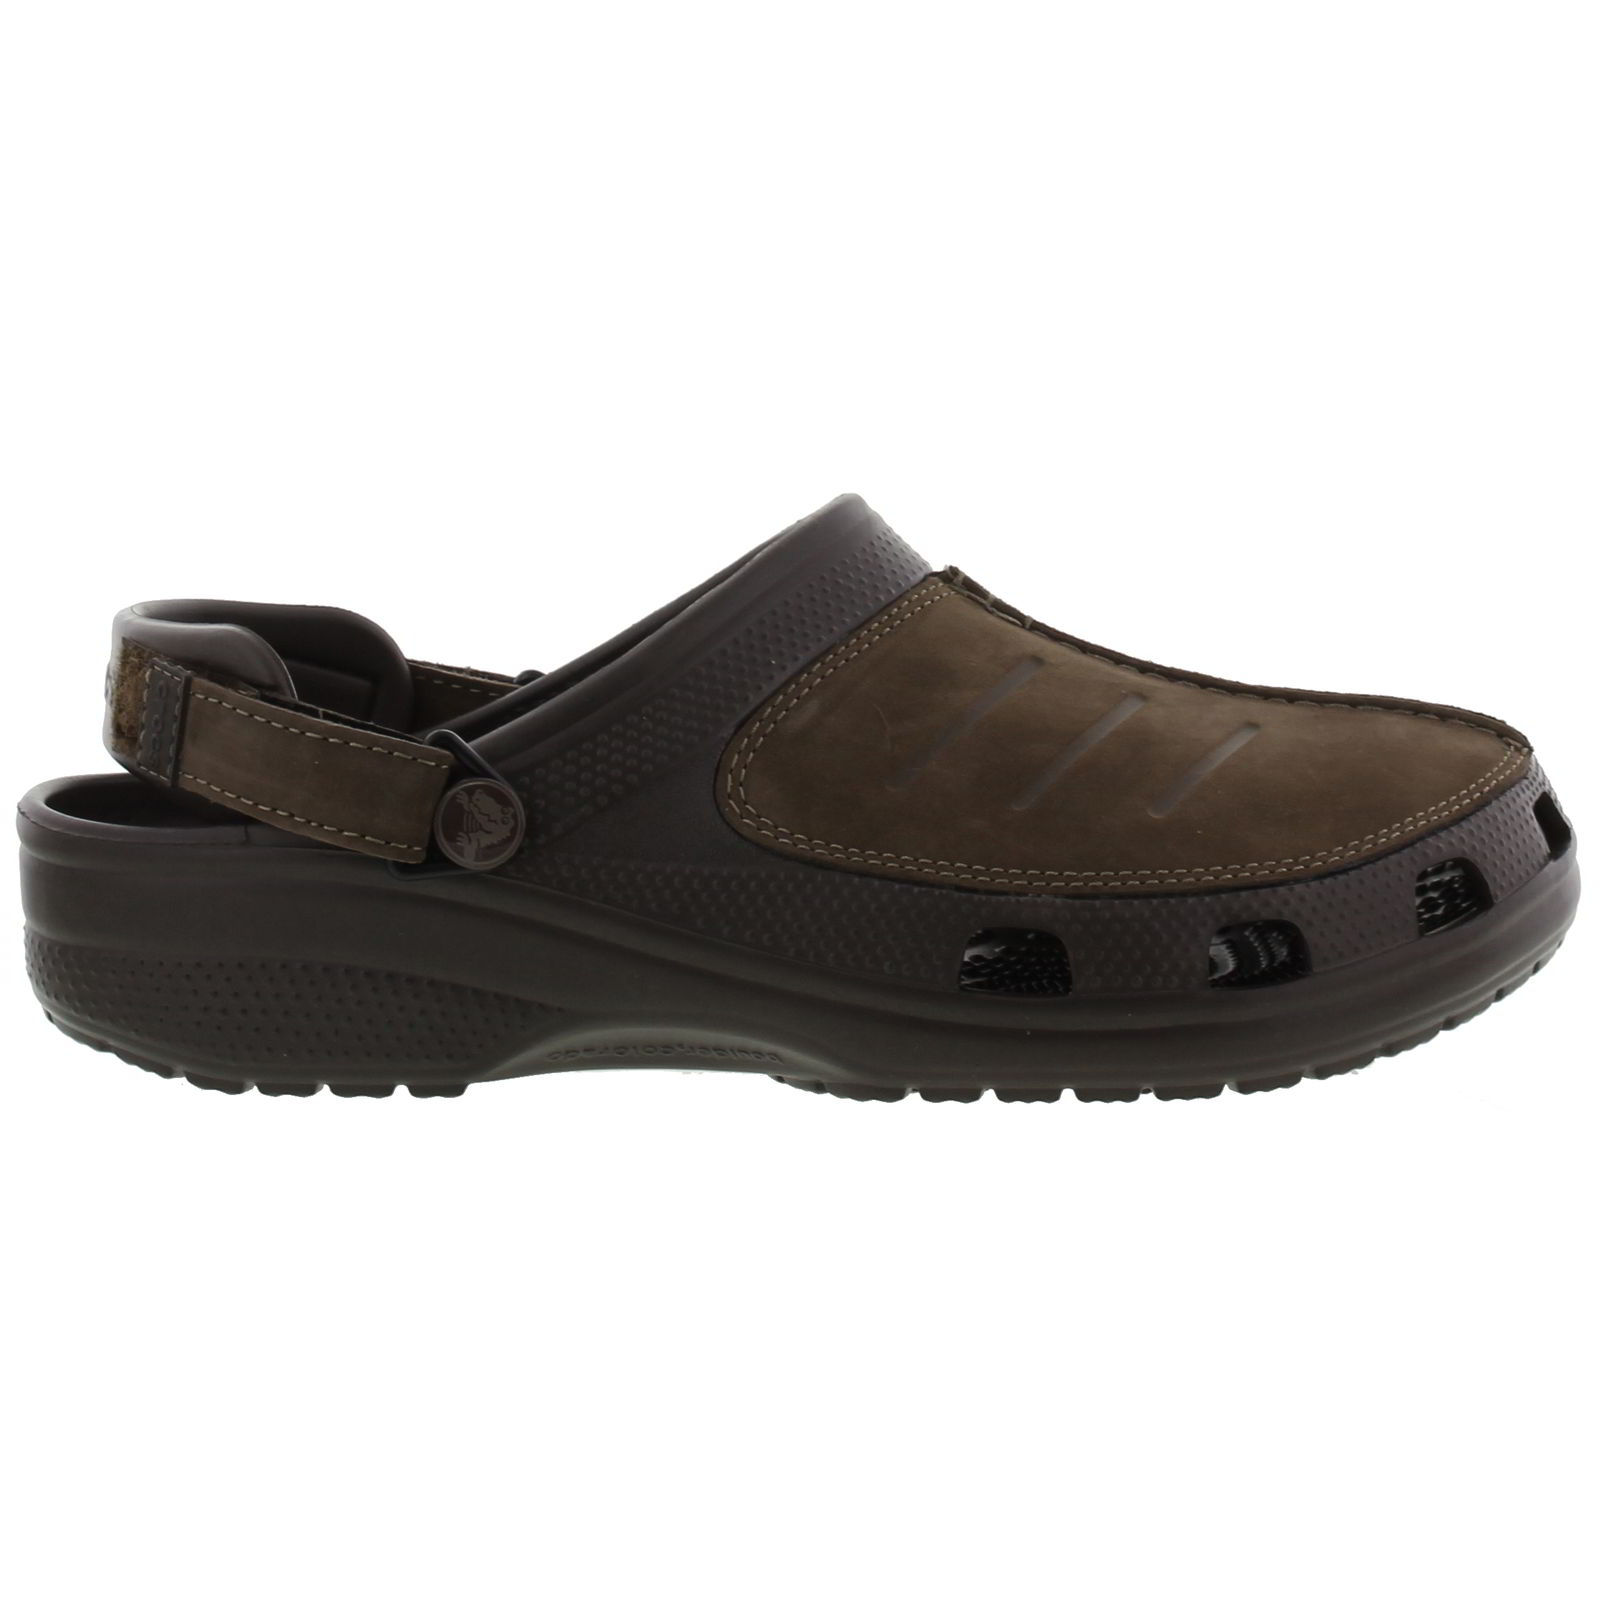 Crocs Yukon Mesa Clog Mens Black Brown Leather Clogs Shoes Size UK 6-12 | EBay